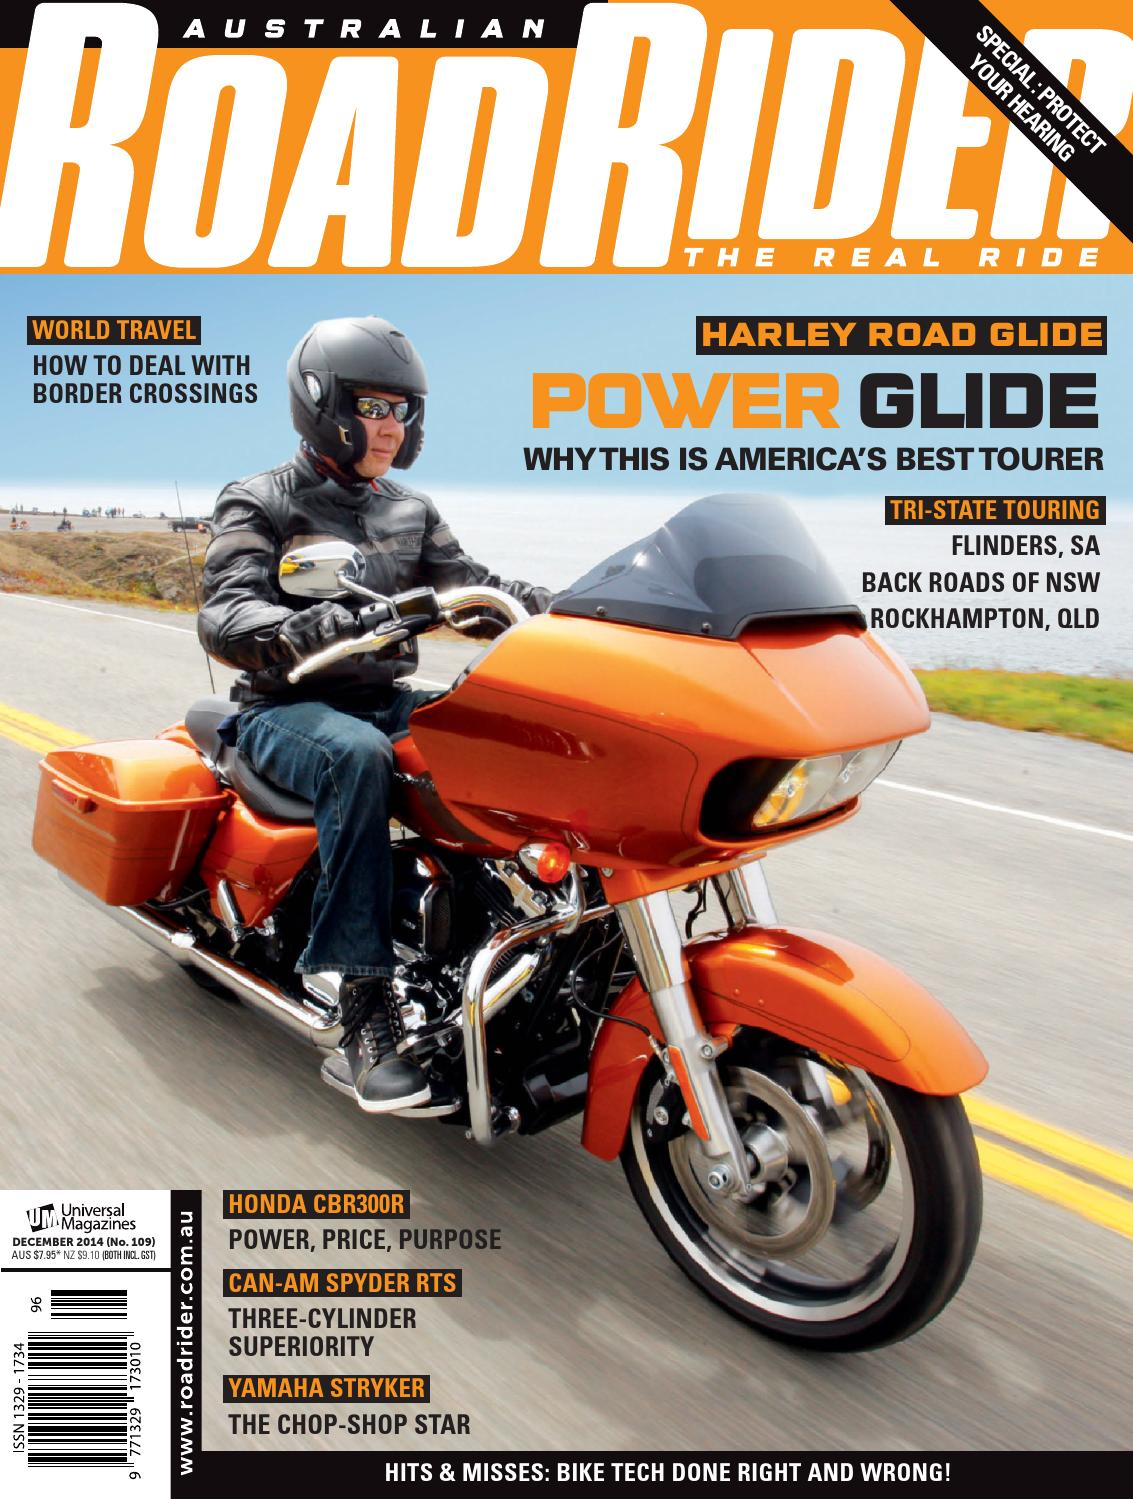 Issue109 Dec 2014 By Australian Road Rider Official Issuu 2006 Honda Cbr600rr Behind Left Middle Fairing Fuse Box Diagram